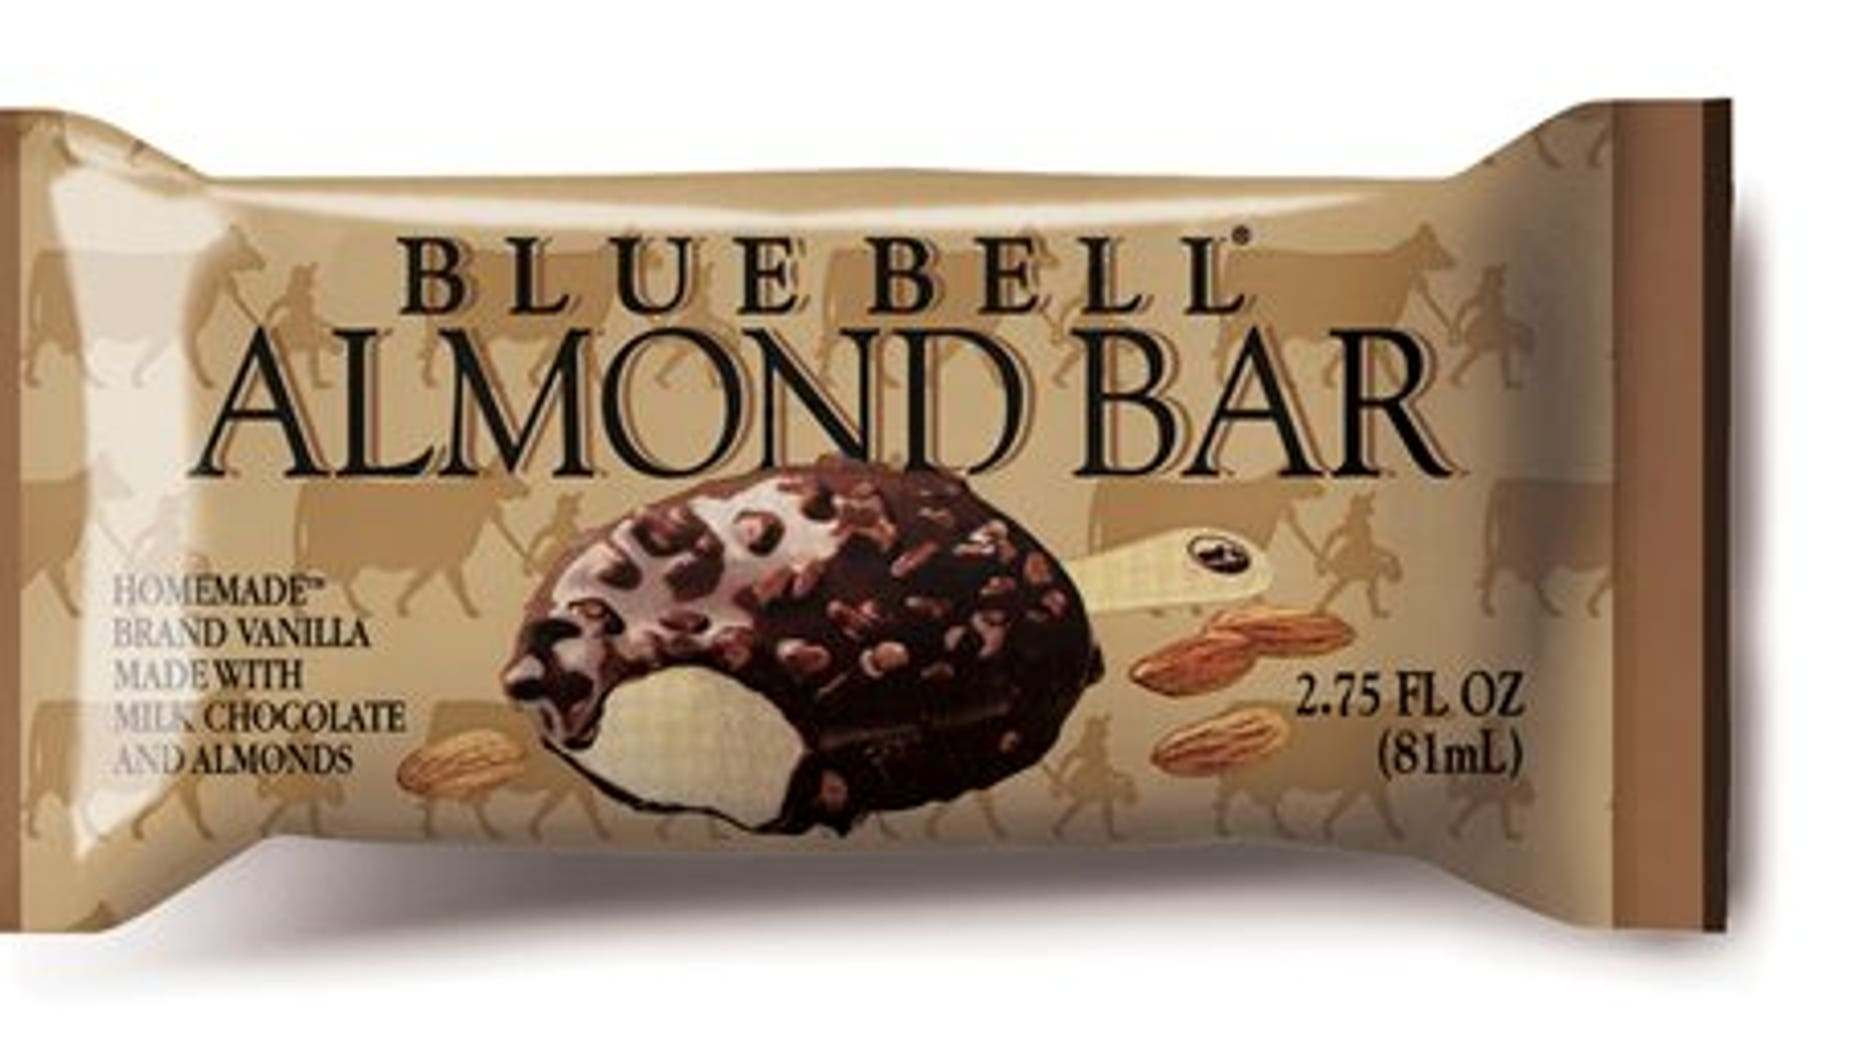 This undated photo provided by Blue Bell shows Blue Bell  Almond Bar. (AP Photo/Blue Bell)